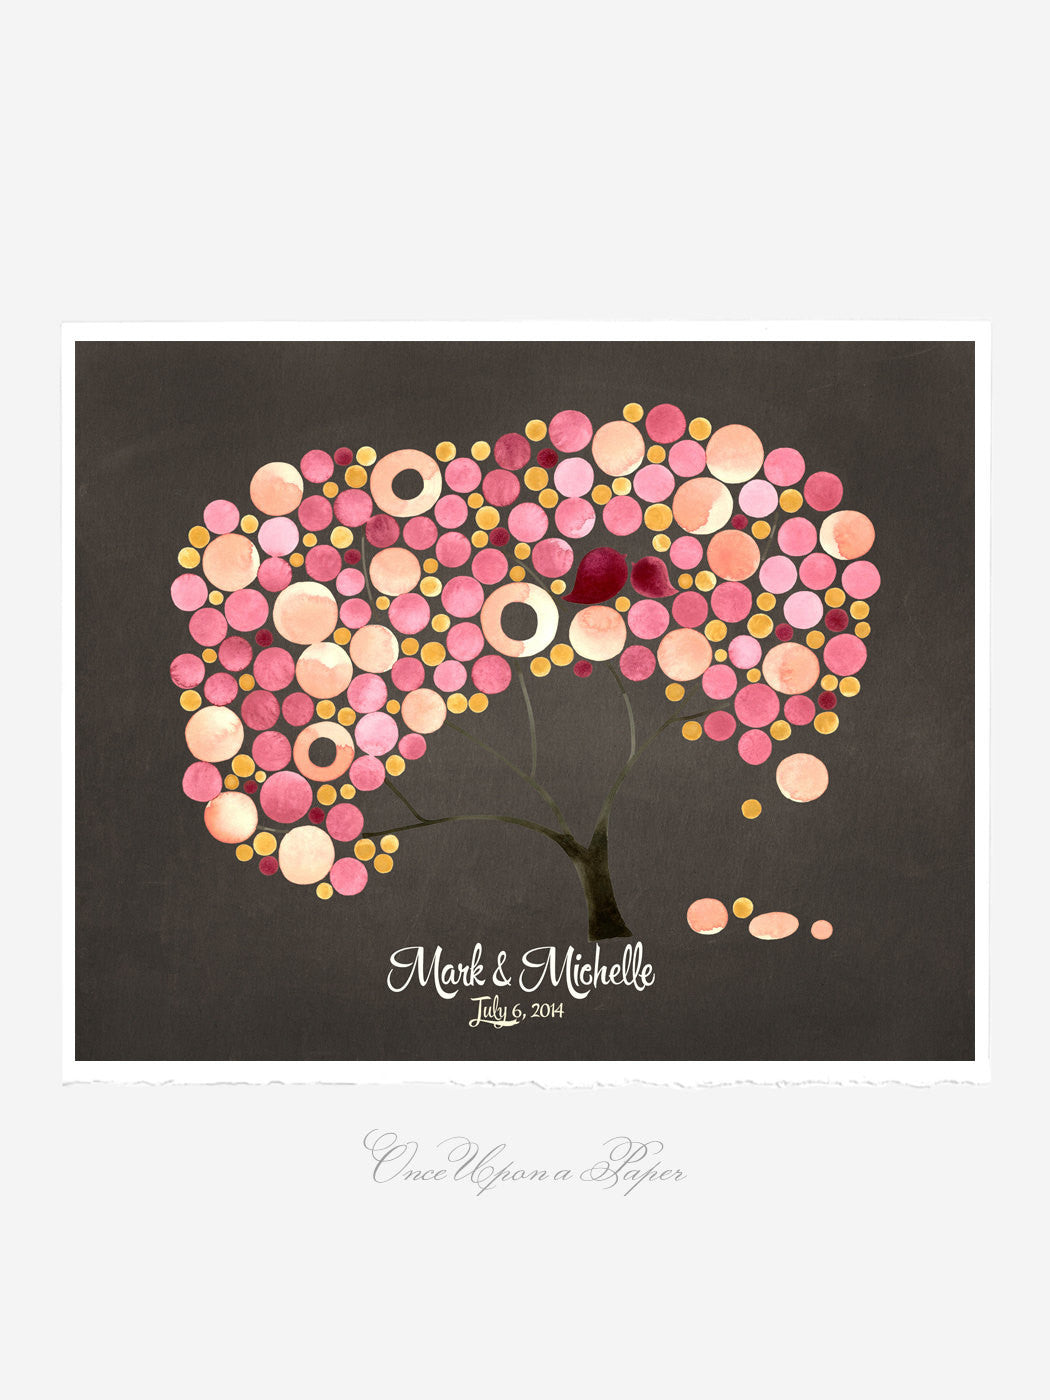 Wedding Rustic Guest Book Alternative - YUKON CHERRY TREE 100 Guest Sign in - Personalized Signature Wedding Tree Love Birds  art Poster